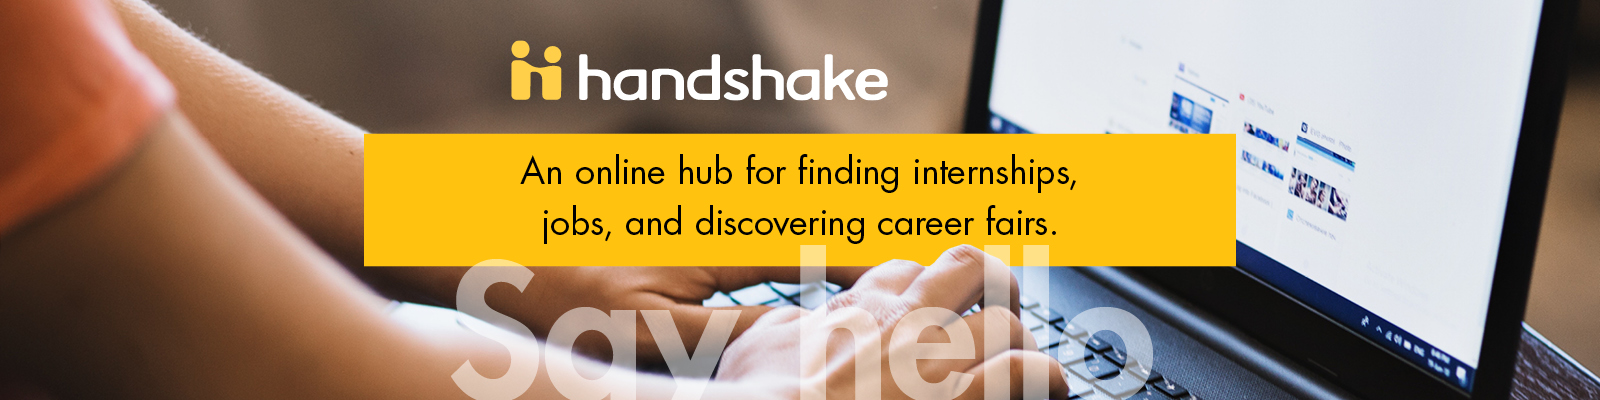 Handshake: finding internships, jobs, and discovering career fairs.